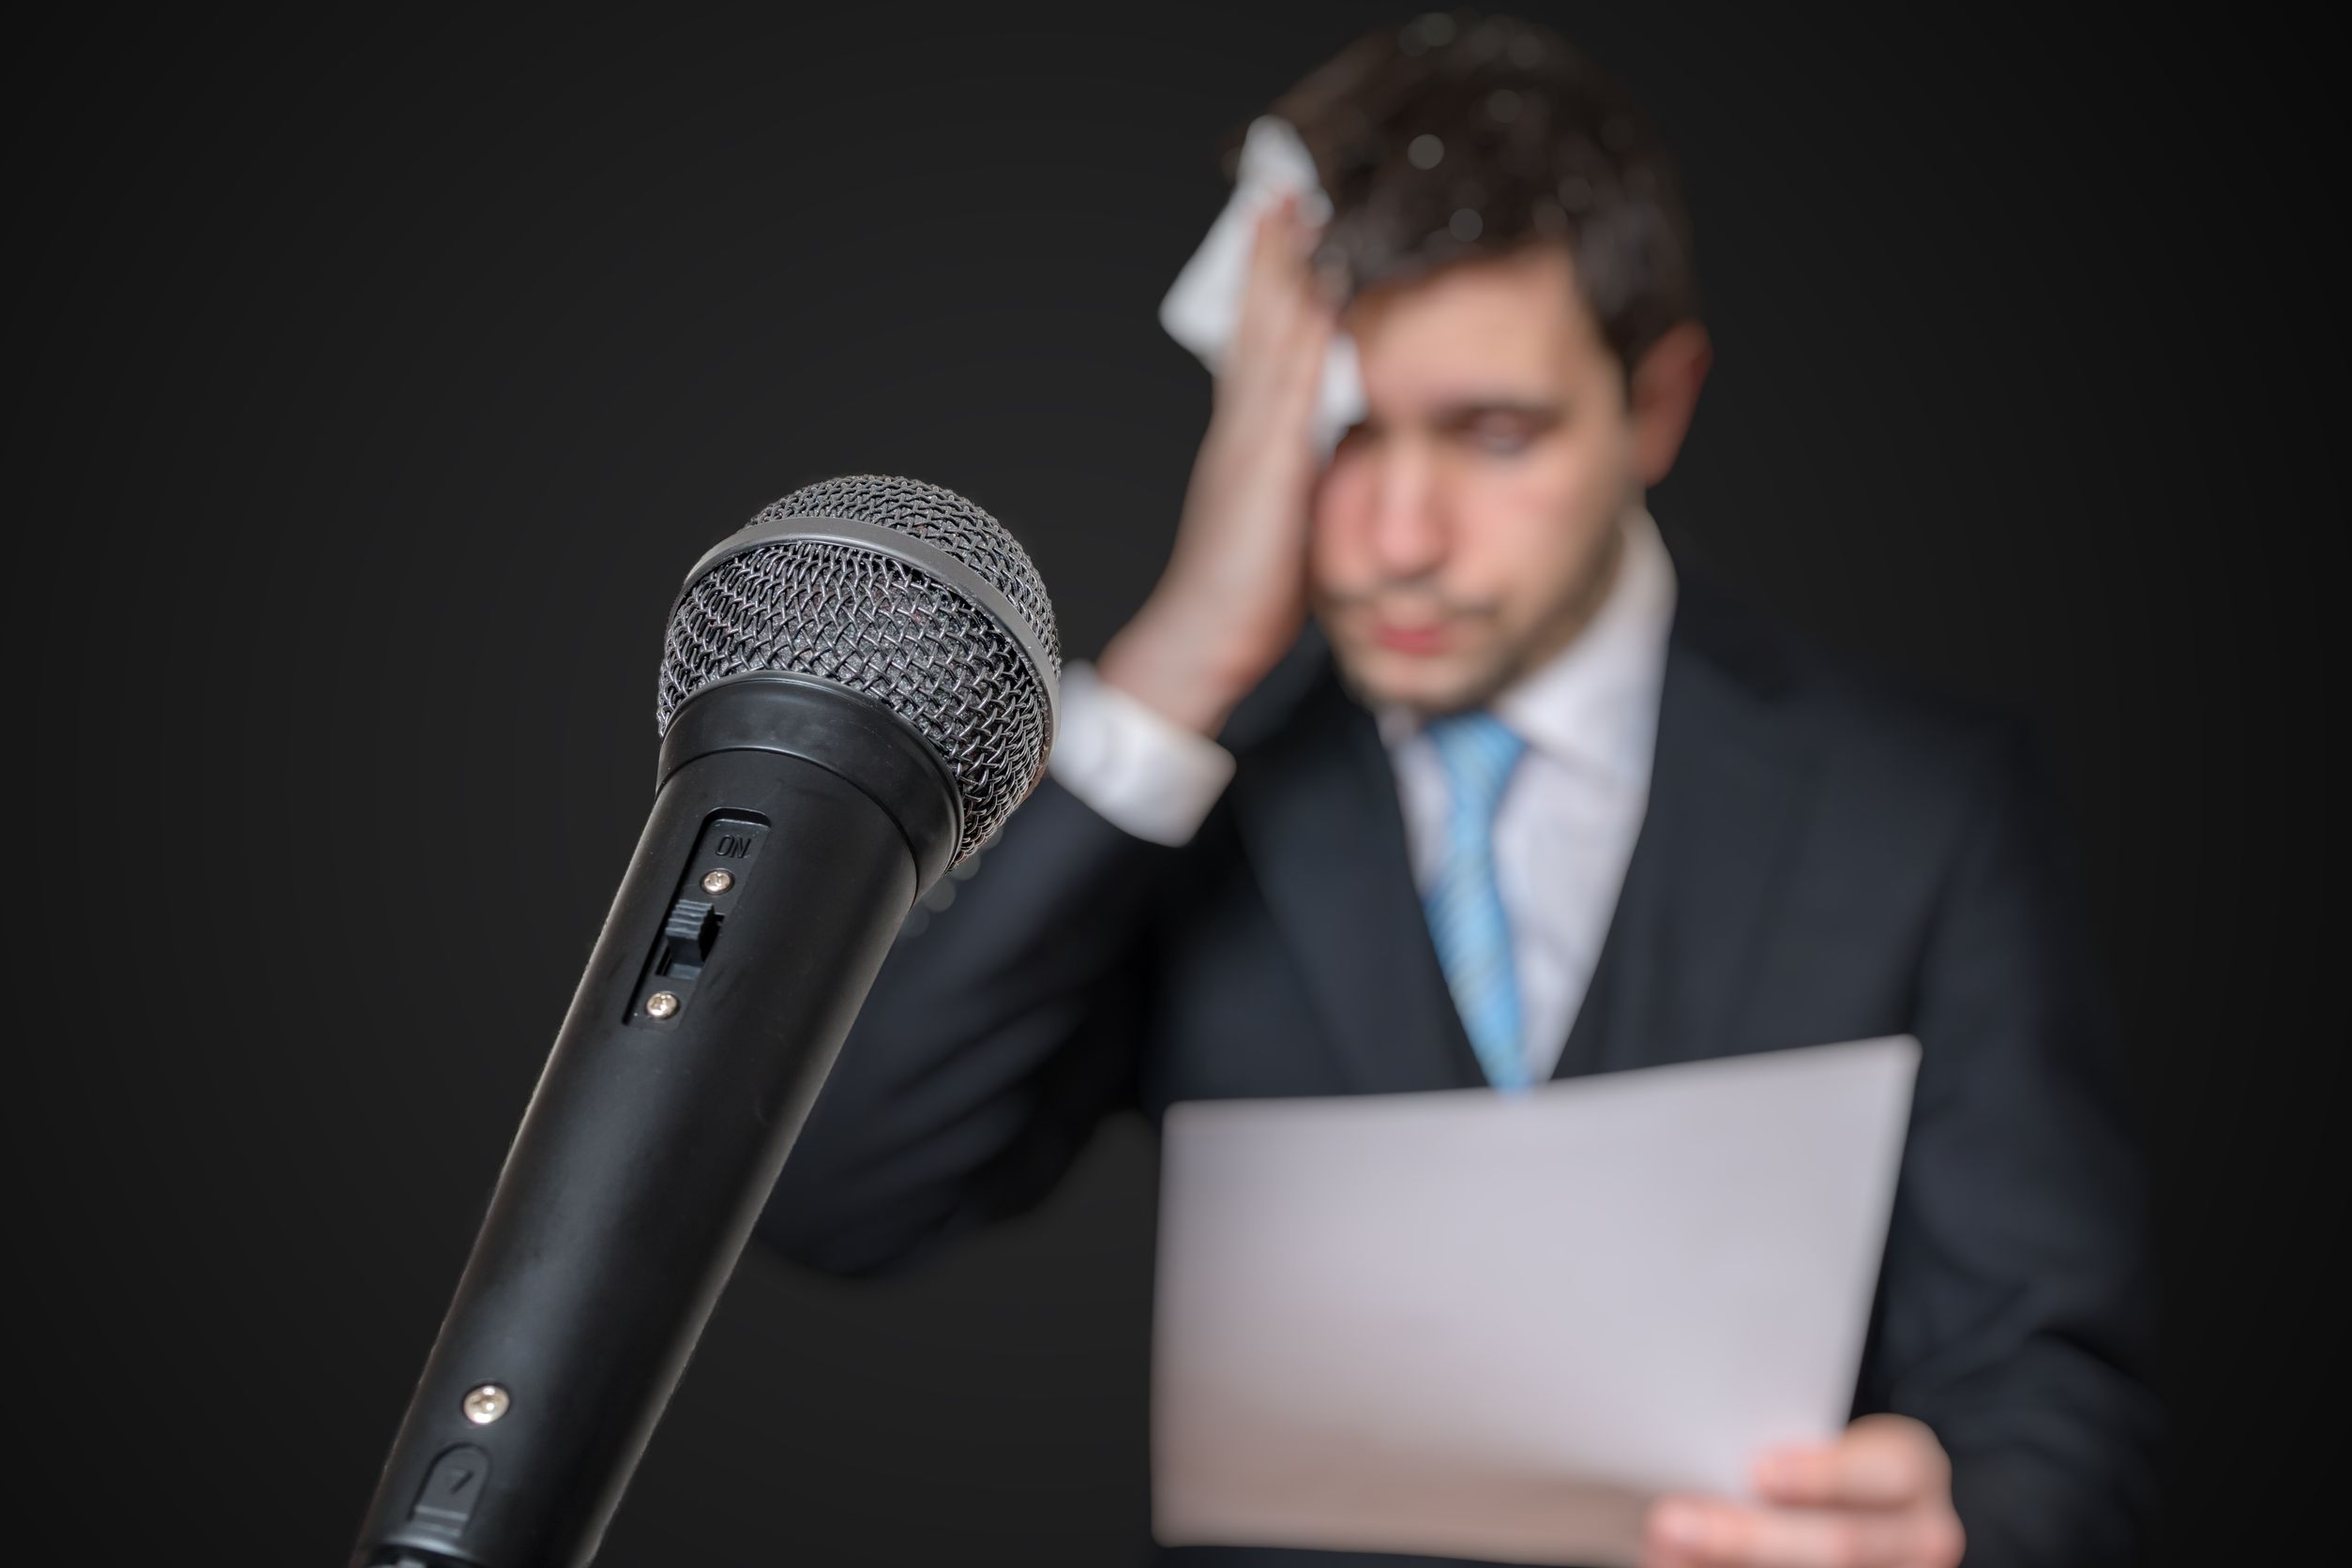 Microphone in front of a nervous man who is afraid of public speech and sweating